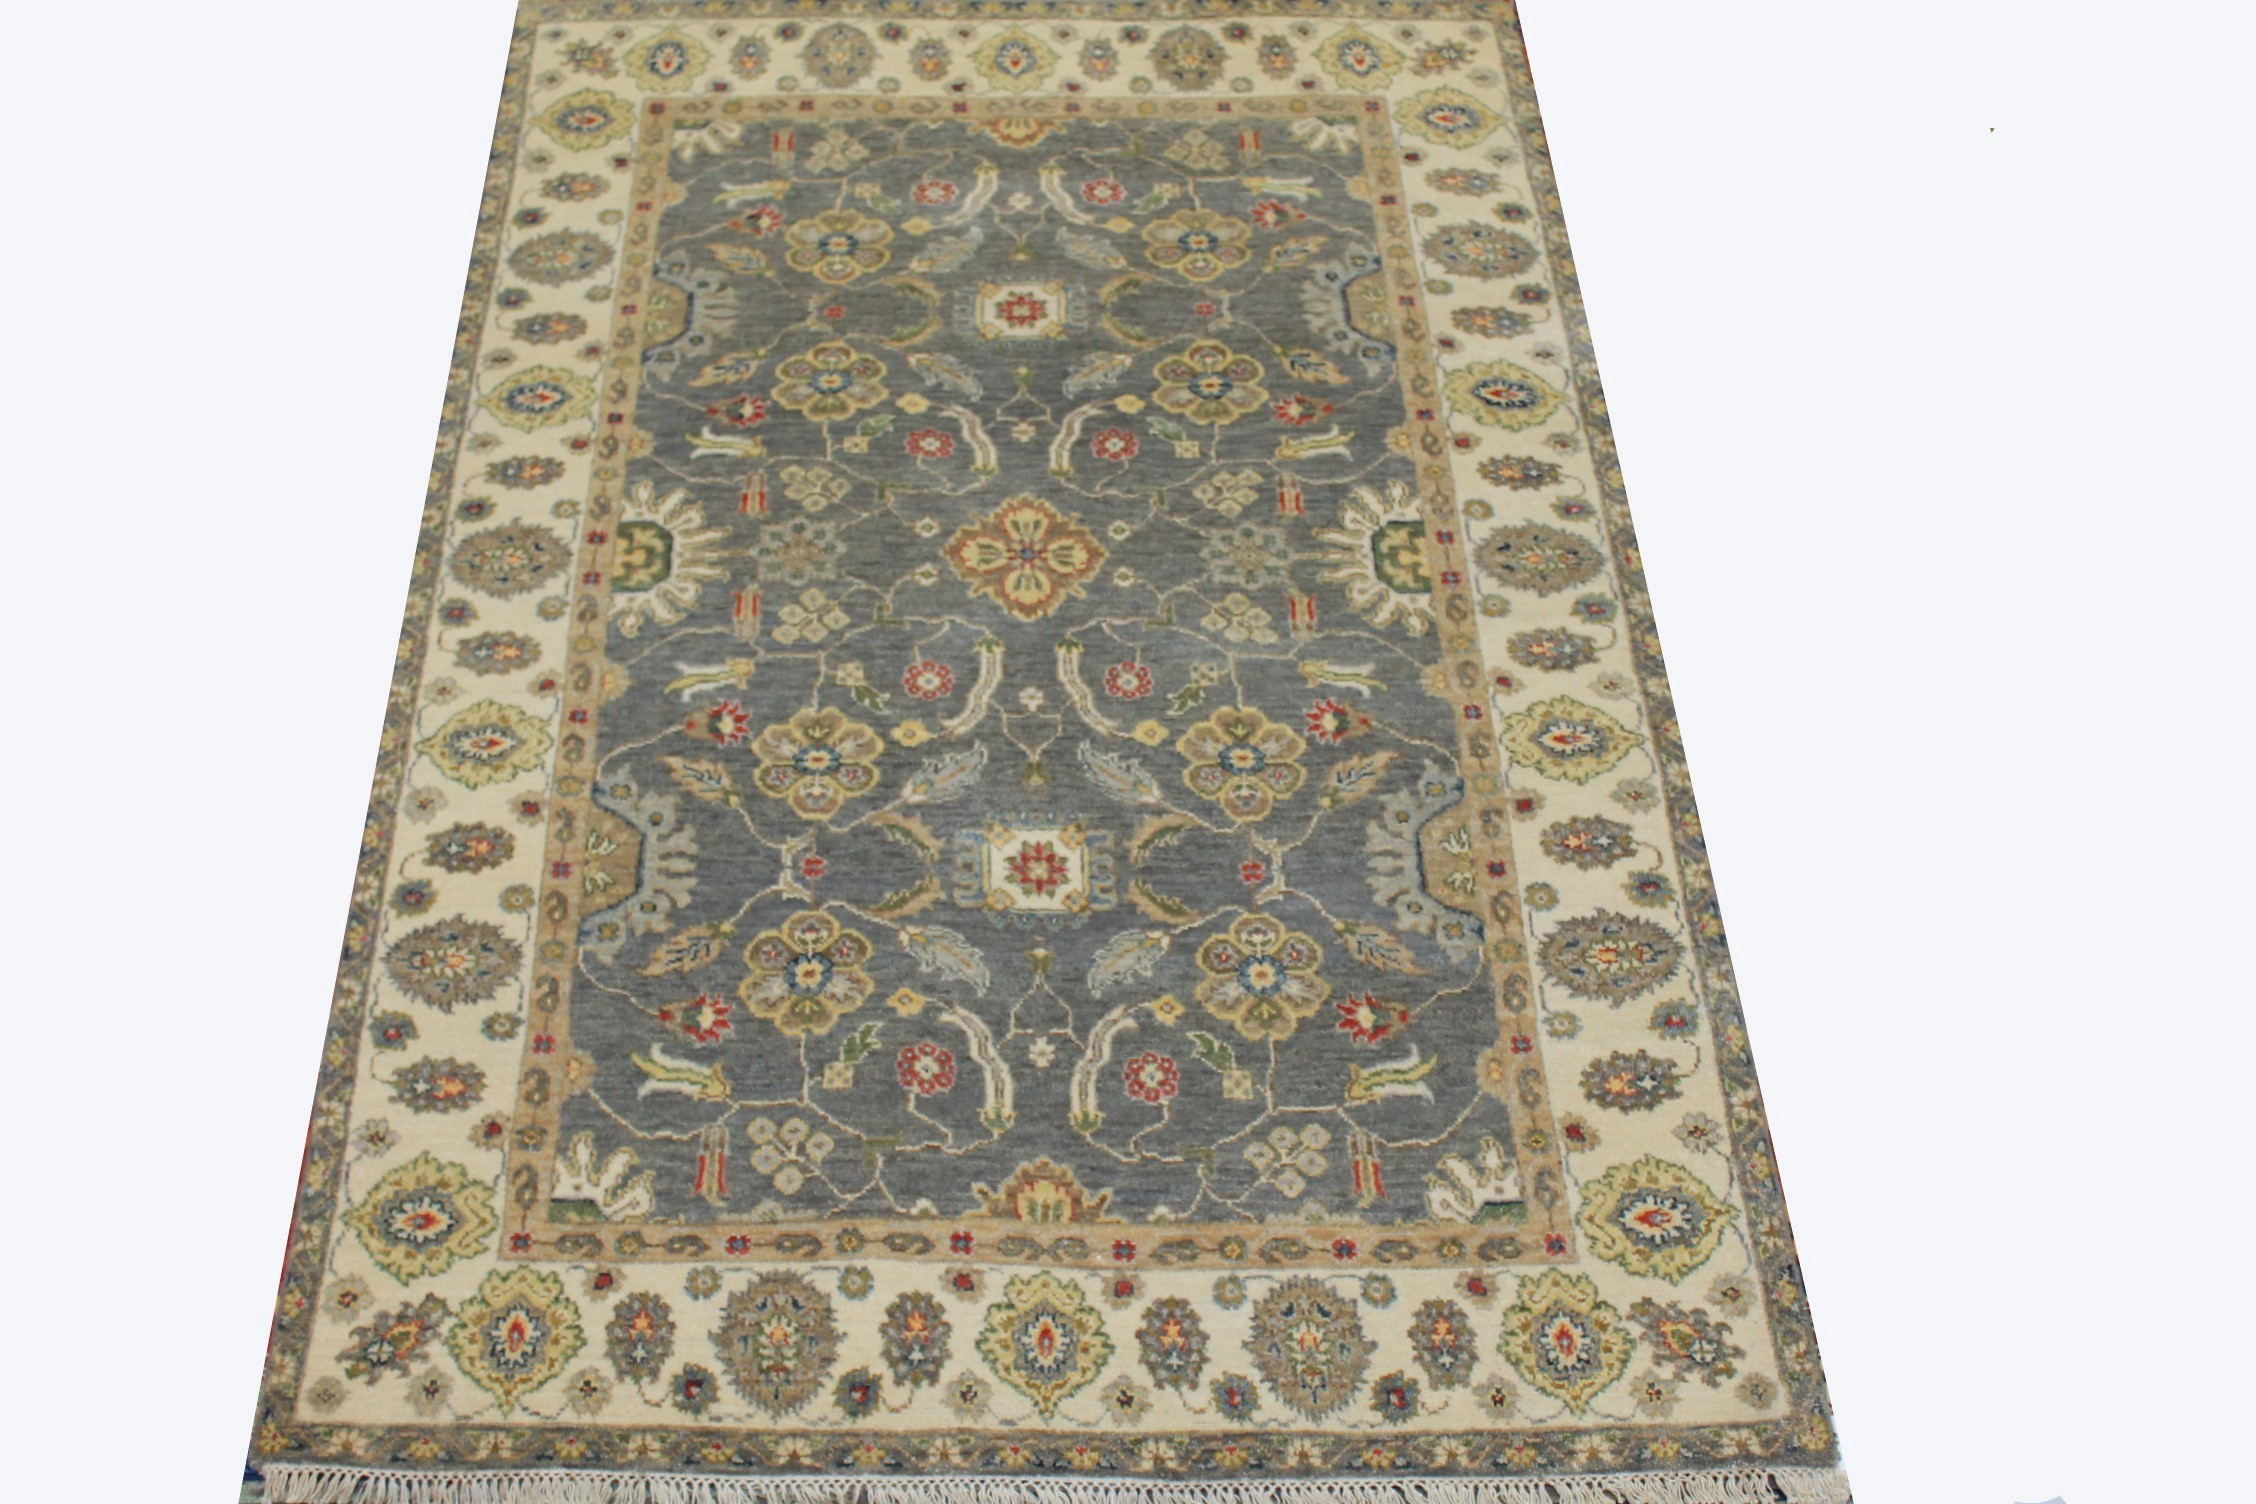 4x6 Traditional Hand Knotted Wool Area Rug - MR025234